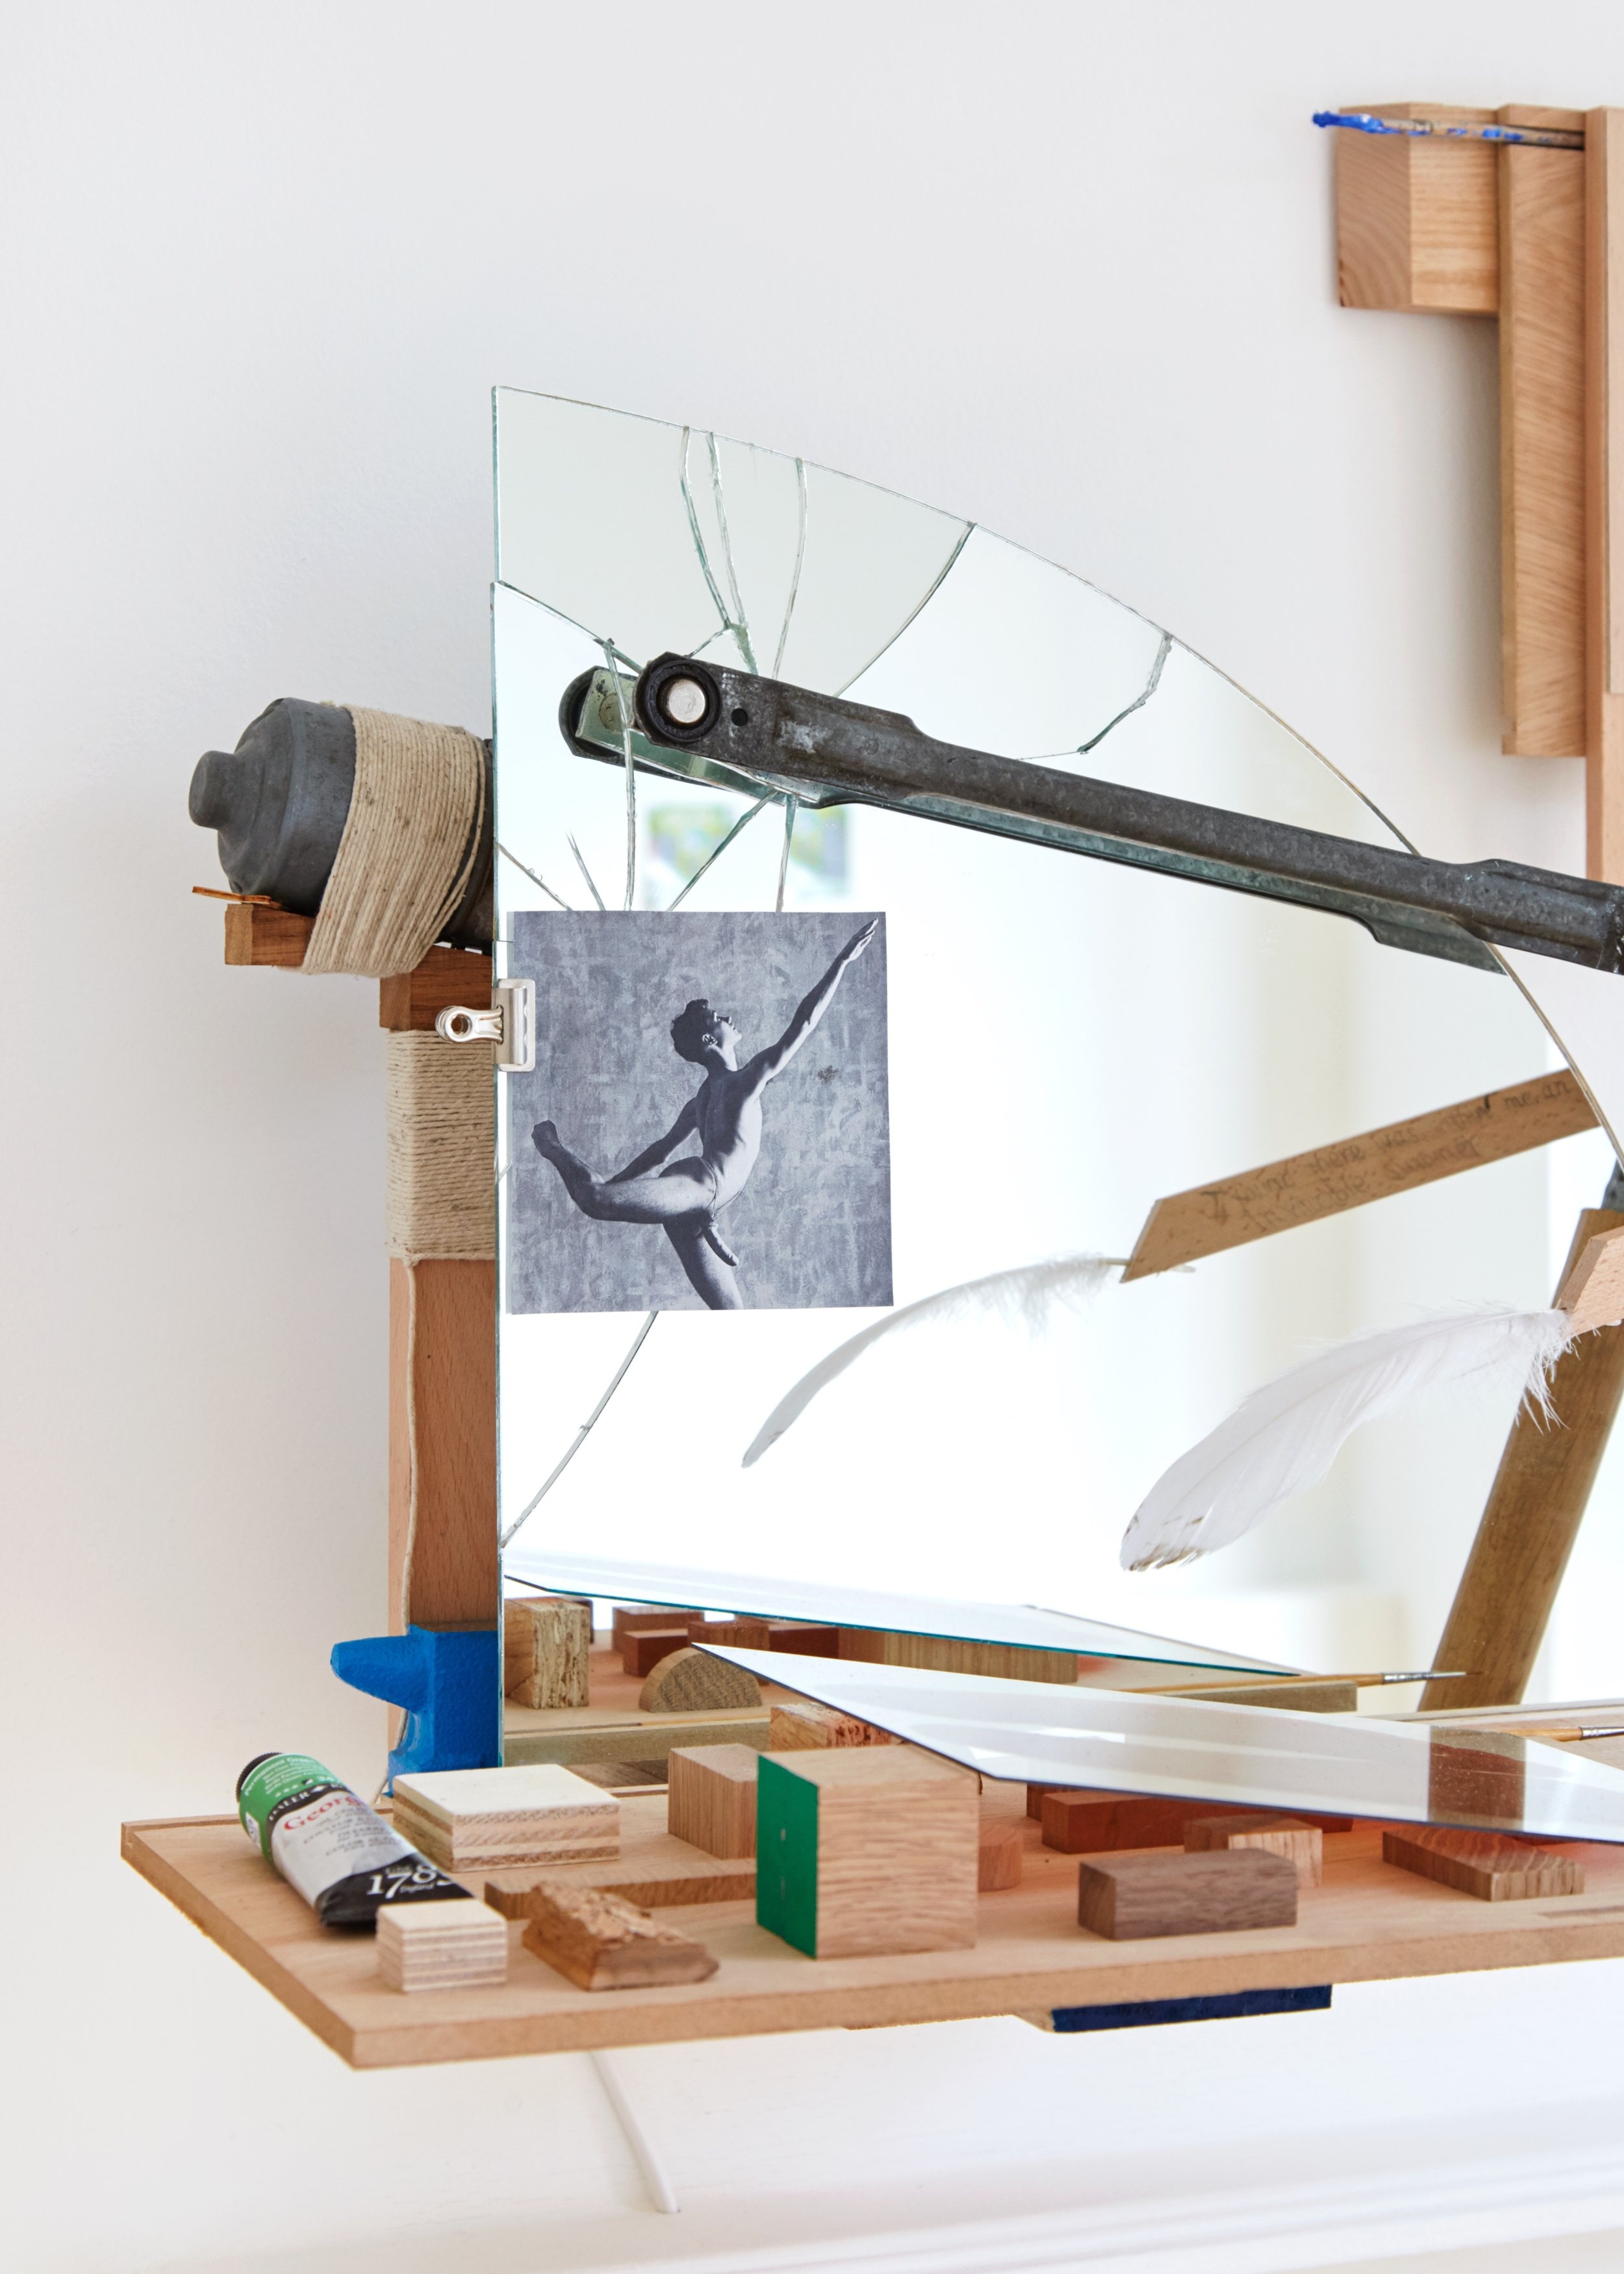 """Detail of  I found there was, within me, an invincible summer,  2019 Oak Veneered MDF, Pencil on Beech, Painted Oak, Glass, Assorted Pebbles from Cornwall and Lancaster, Pebble from Plymouth, Laser cut Plywood, Paint Brushes, Painted Anvil, Found Photograph of the Ballerina Michael Clark, Bulldog Clip, String, Wiper Motor and Mechanism, Arduino and Electronic Components, Broken Mirror, Pasted Torn Notes, Feather, Printed Sticker, Assorted Wooden Shapes (Chip Board, Plywood, Oak, Bark, Walnut, Douglas Fir, """"Permeant Green"""" Oil Paint in Tube and Various Fixings 58 x 95 x 45 cm"""